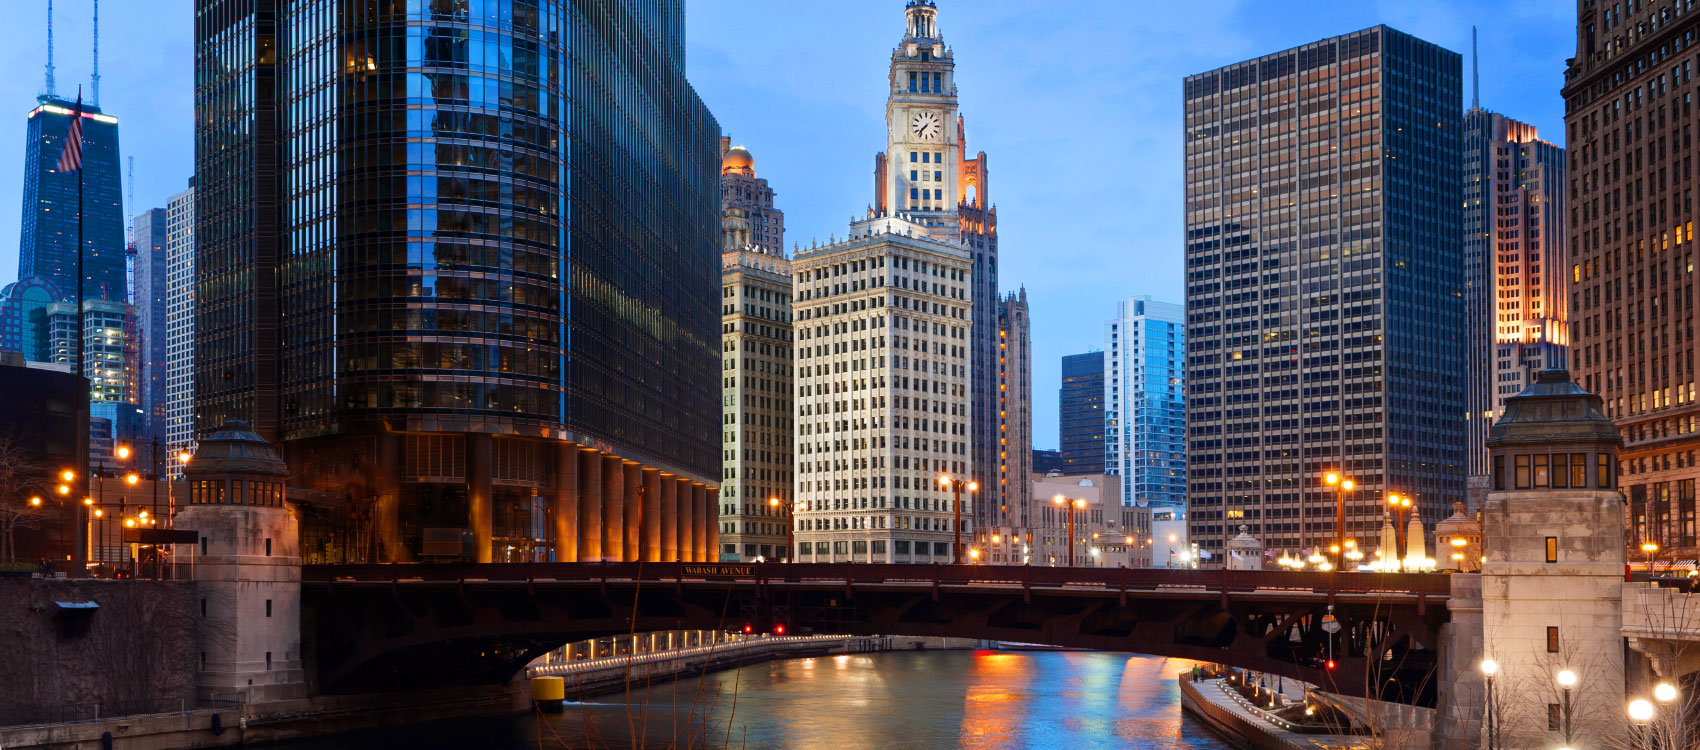 Hotel burnham chicago hotel r best hotel deal site hotel for Trendiest hotels in chicago